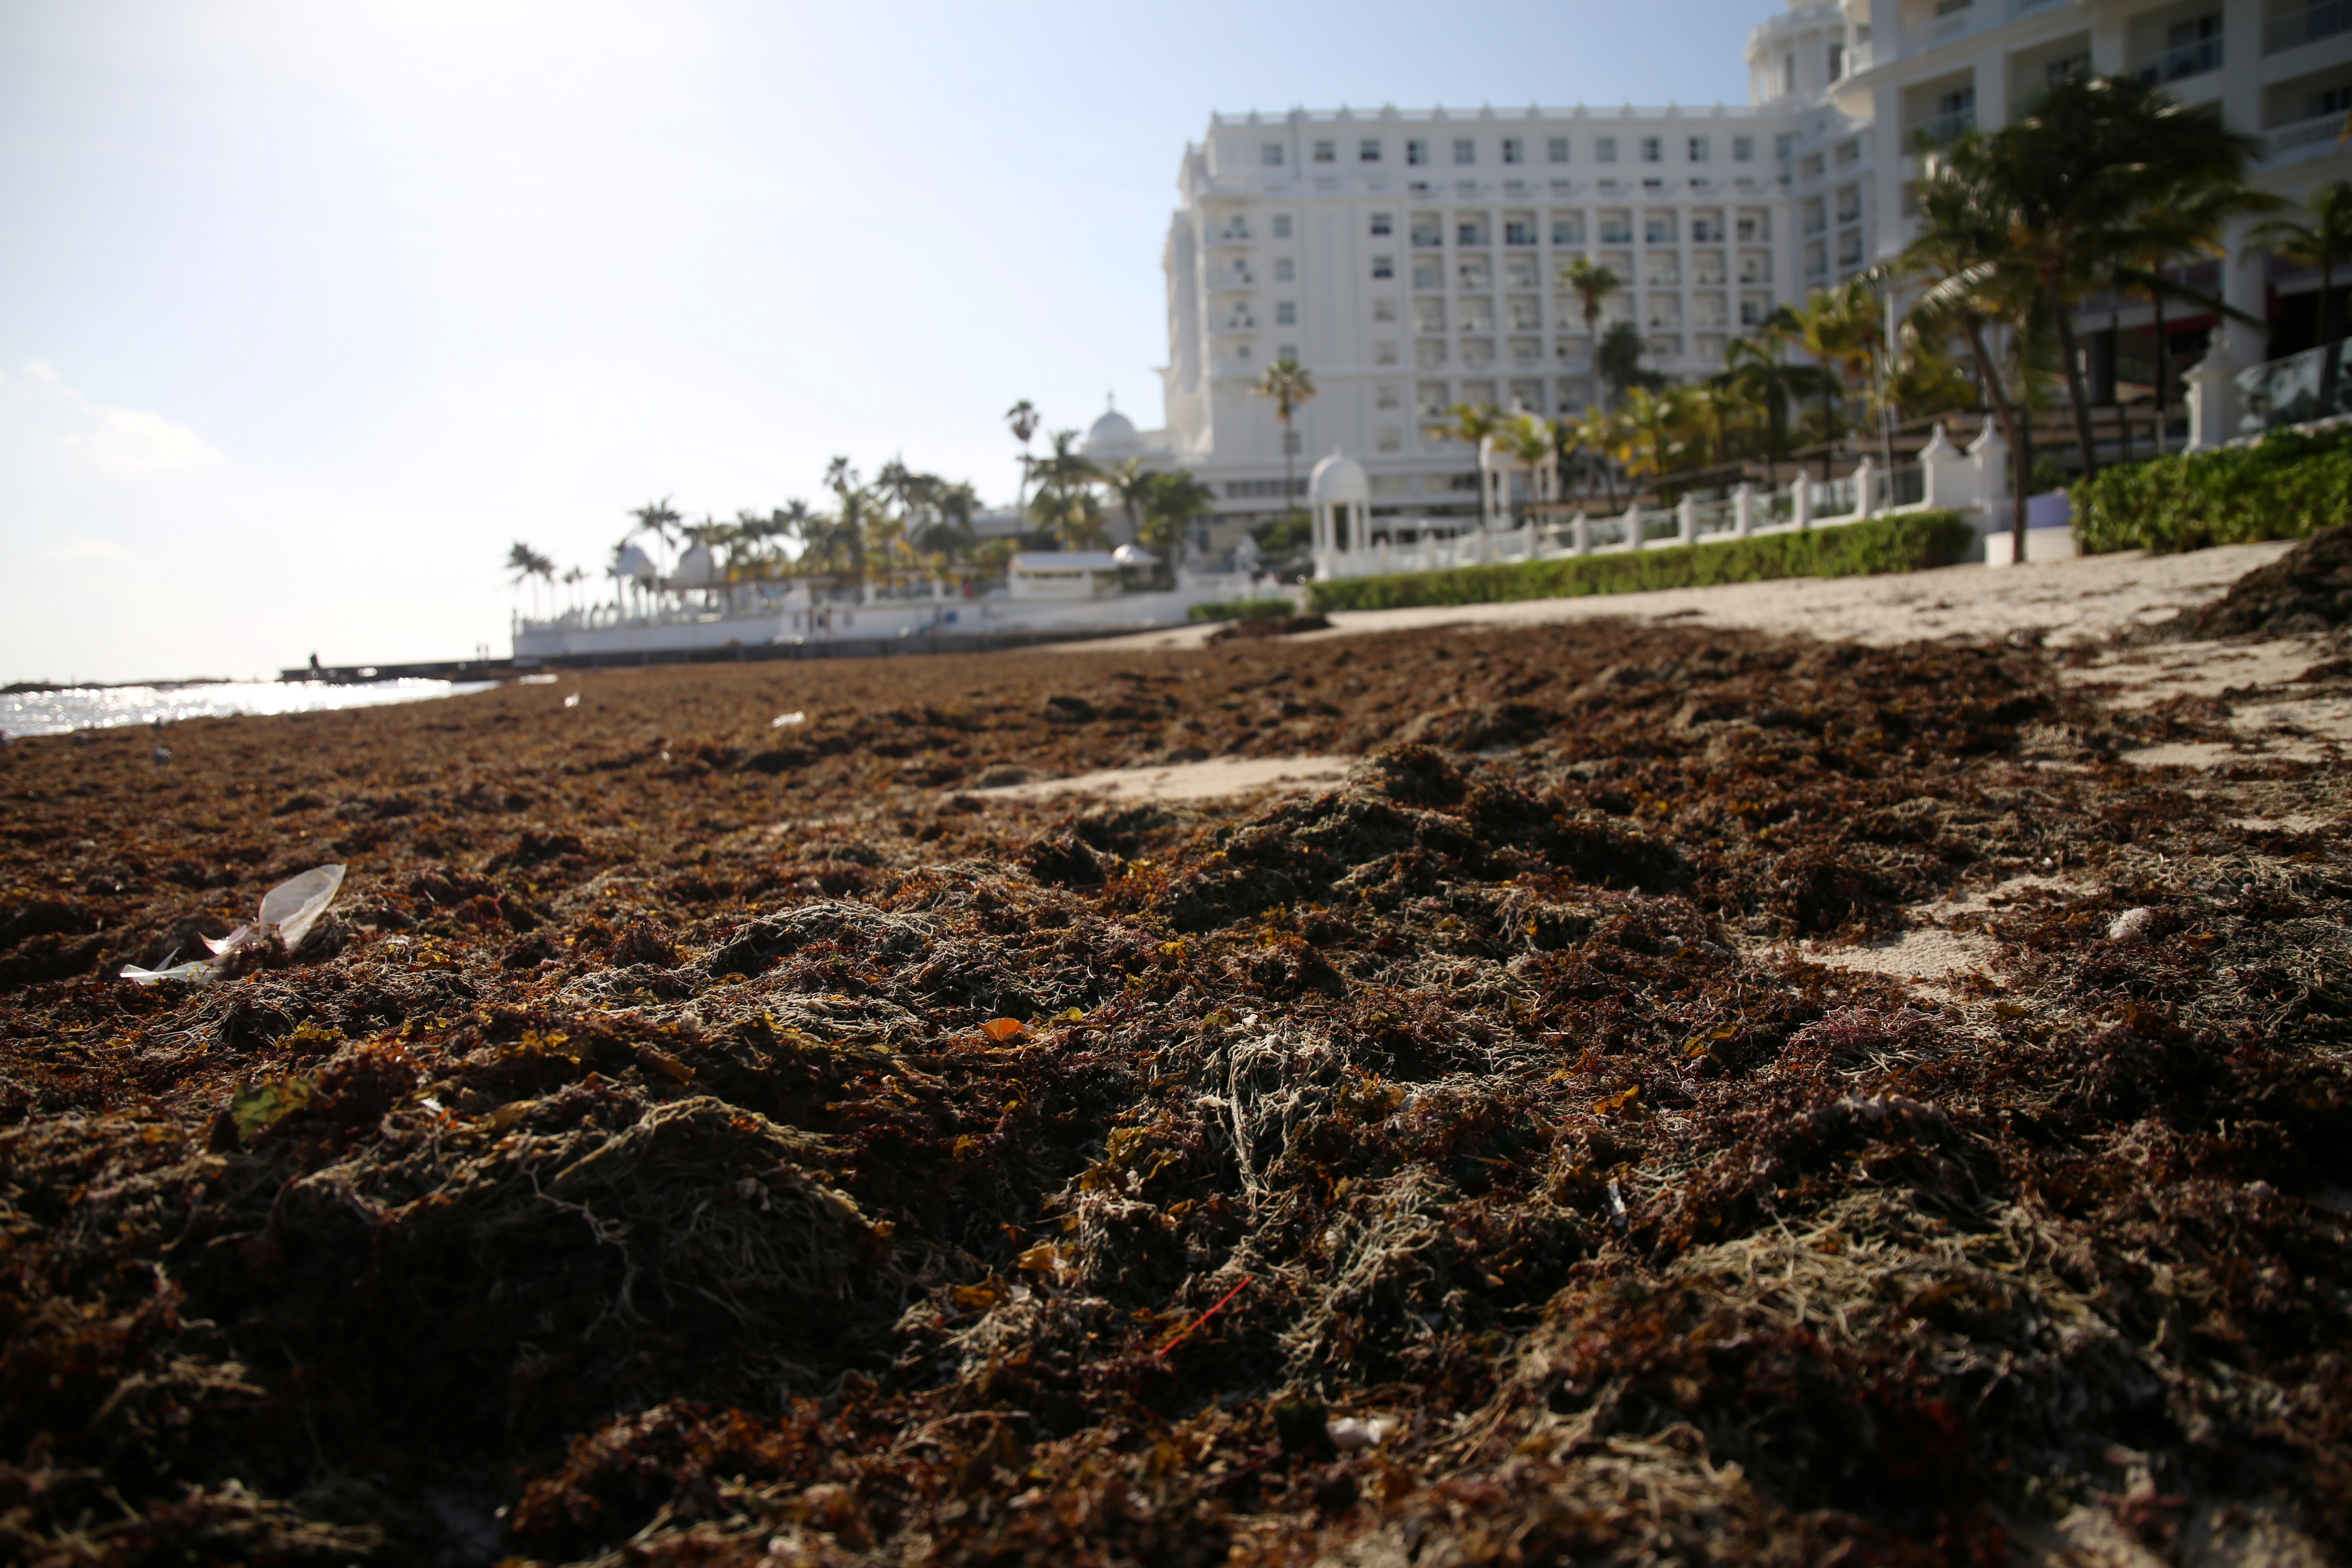 A beach covered with sargassum is pictured near a hotel in Cancun, Mexico August 21, 2021. Picture taken August 21, 2021. REUTERS/Paola Chiomante